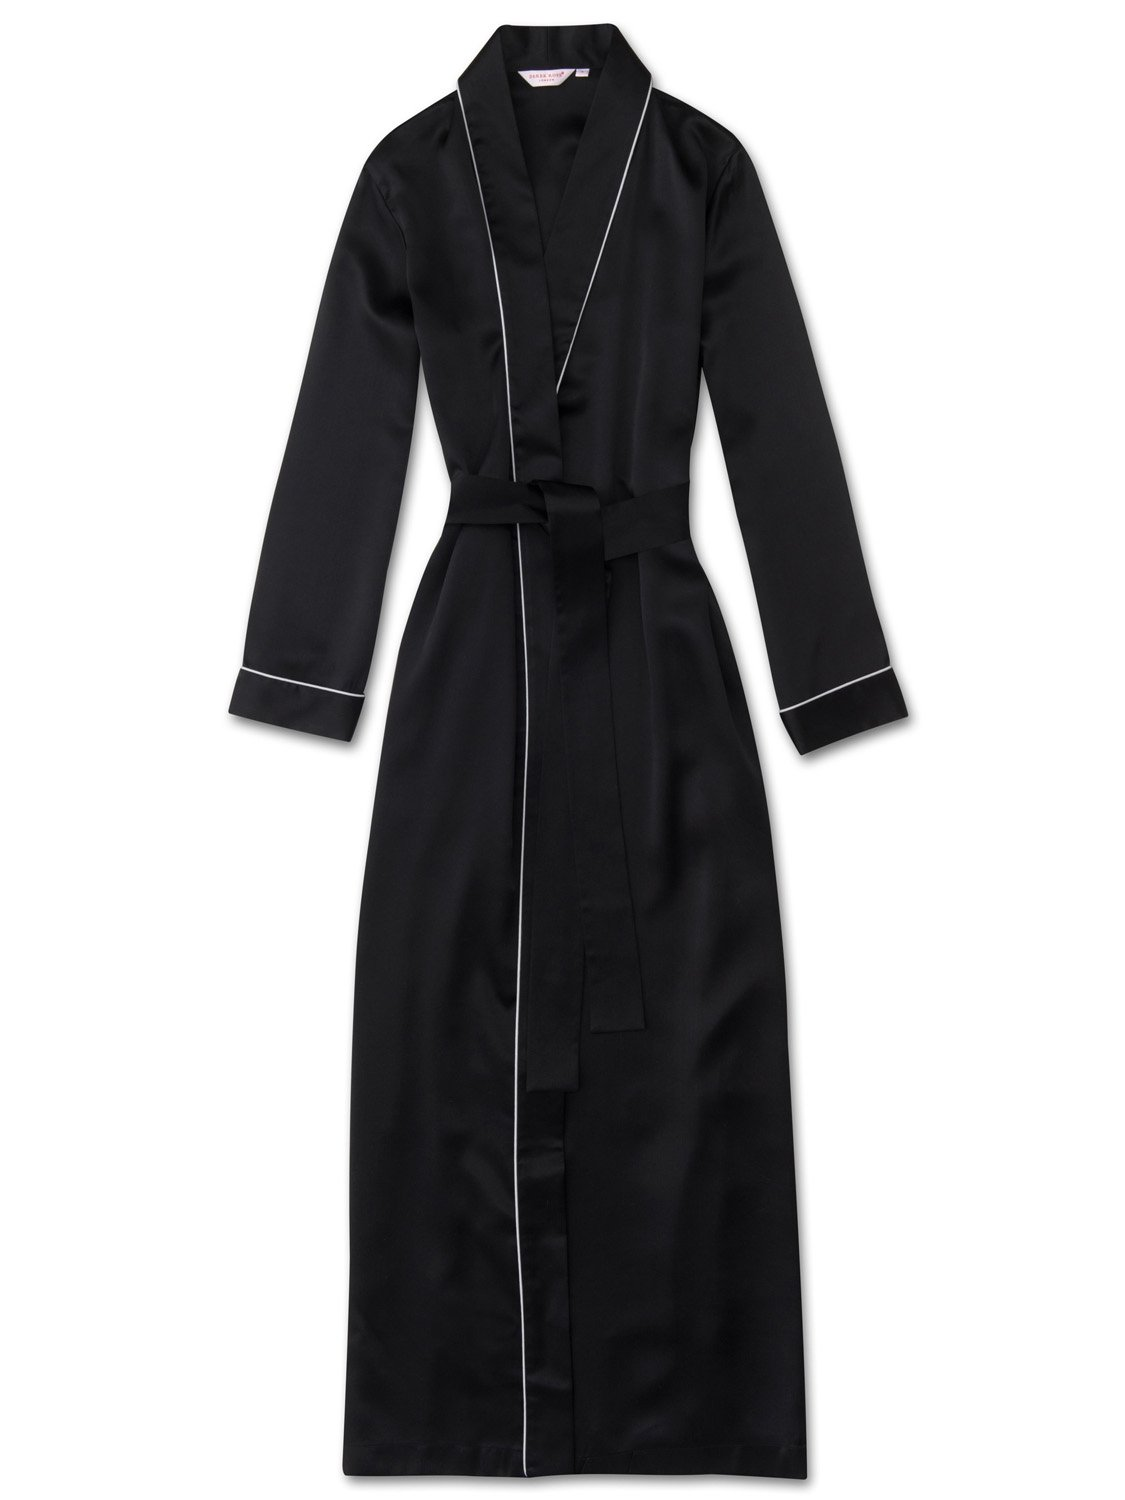 Women's Full Length Dressing Gown Bailey Pure Silk Satin Black